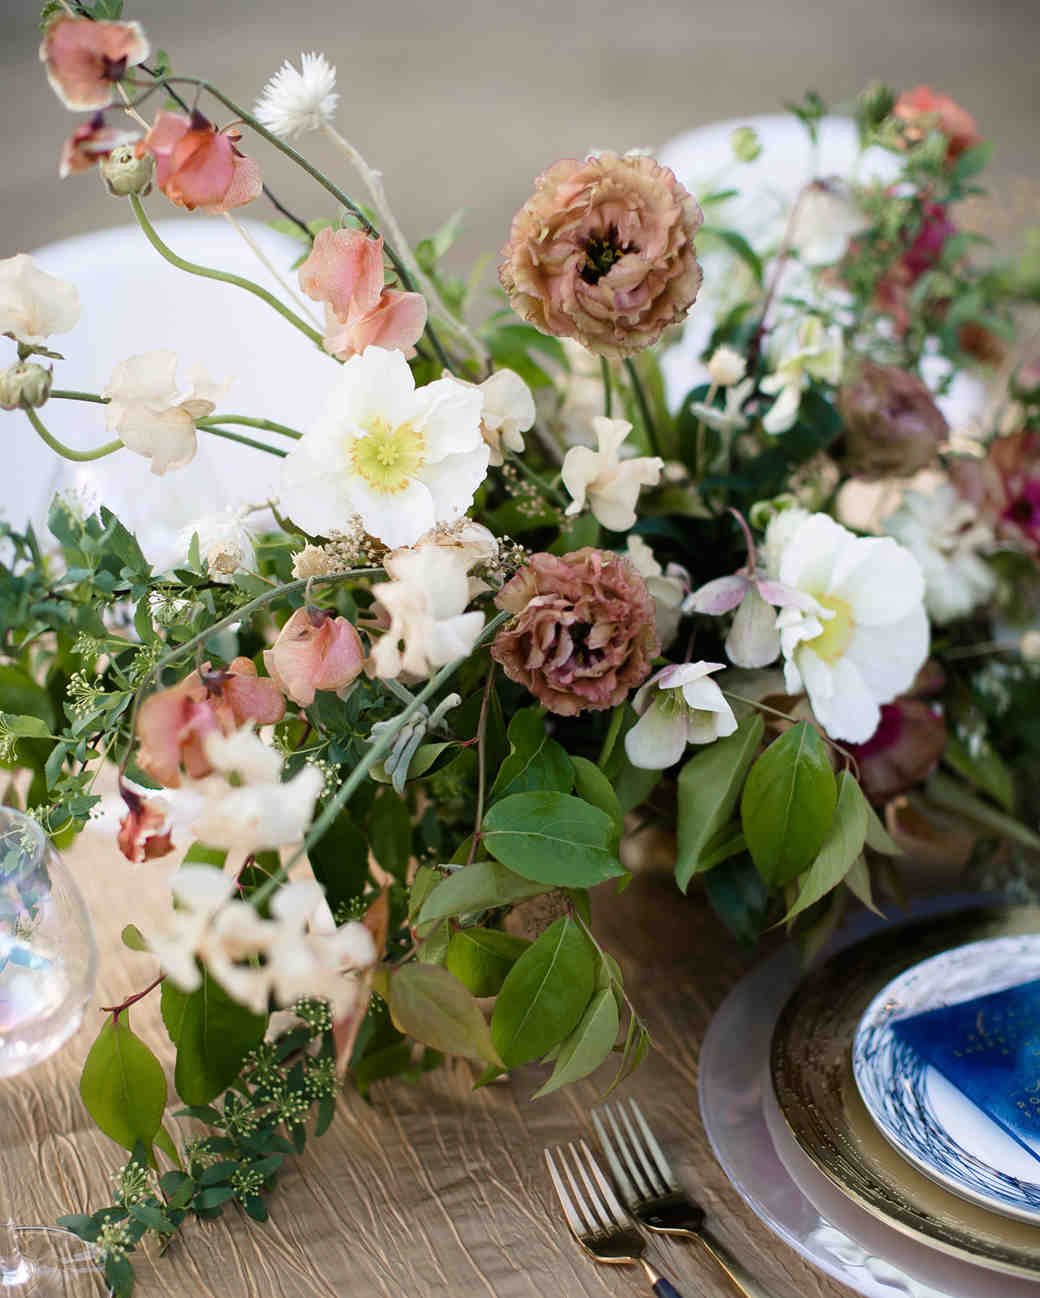 24 ways to use in season flowers in your fall wedding arrangements 24 ways to use in season flowers in your fall wedding arrangements martha stewart weddings junglespirit